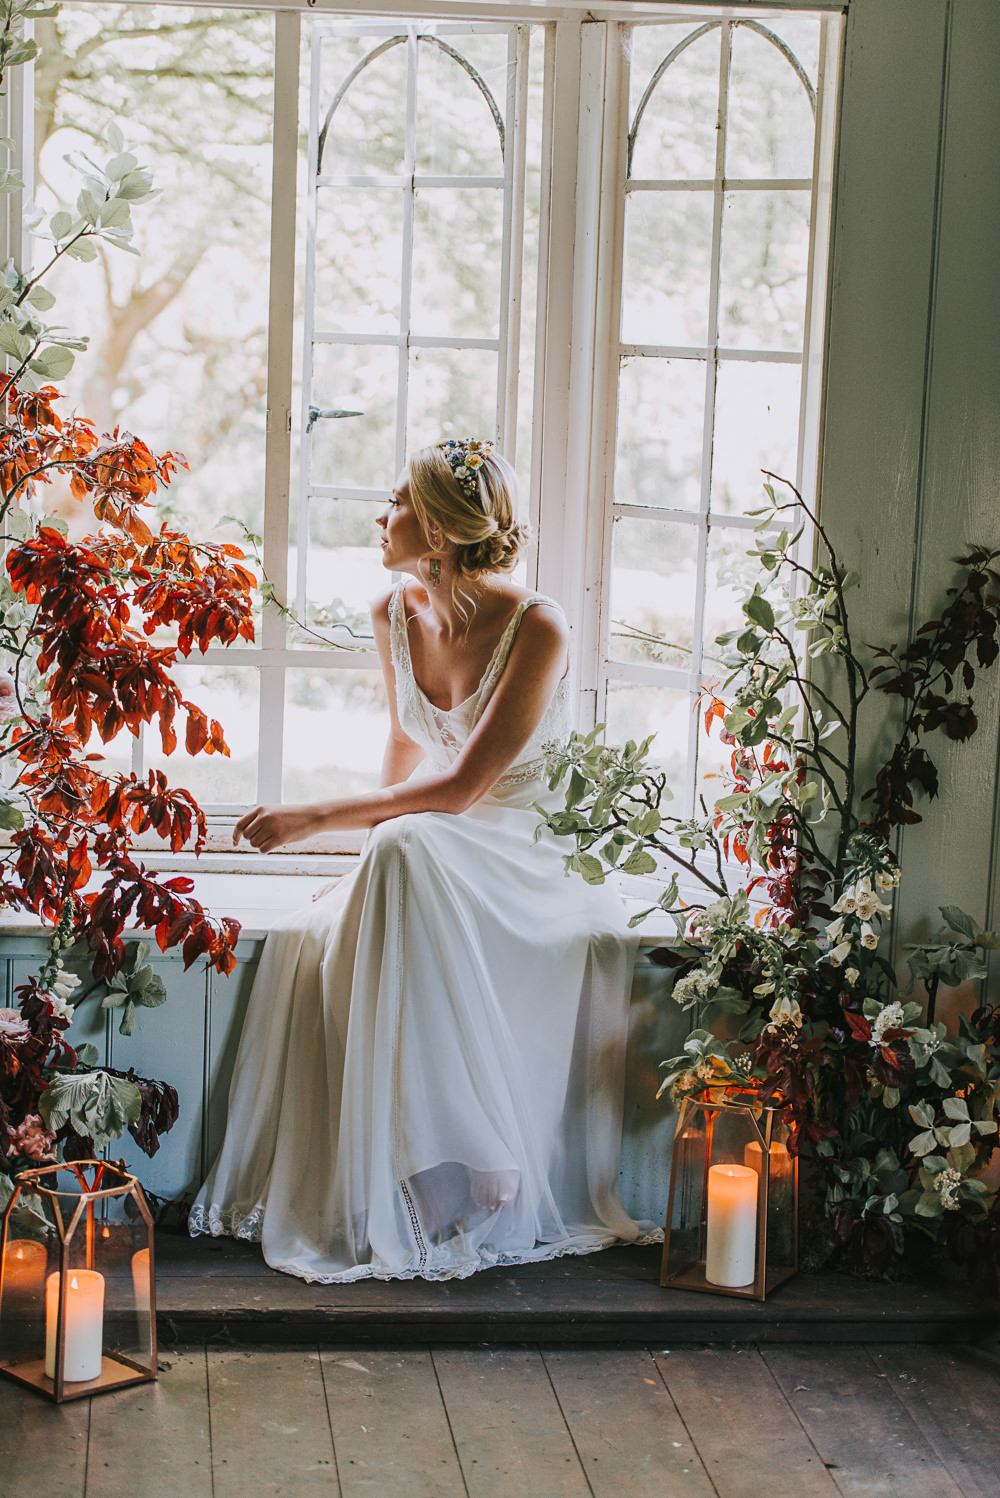 Secret Dresshouse Ethereal Bride Bridal Gown Storm Hurricane Lanterns Candles Leaf Foliage Flower Florals River Romance Wedding Ideas Mindy Coe Photography